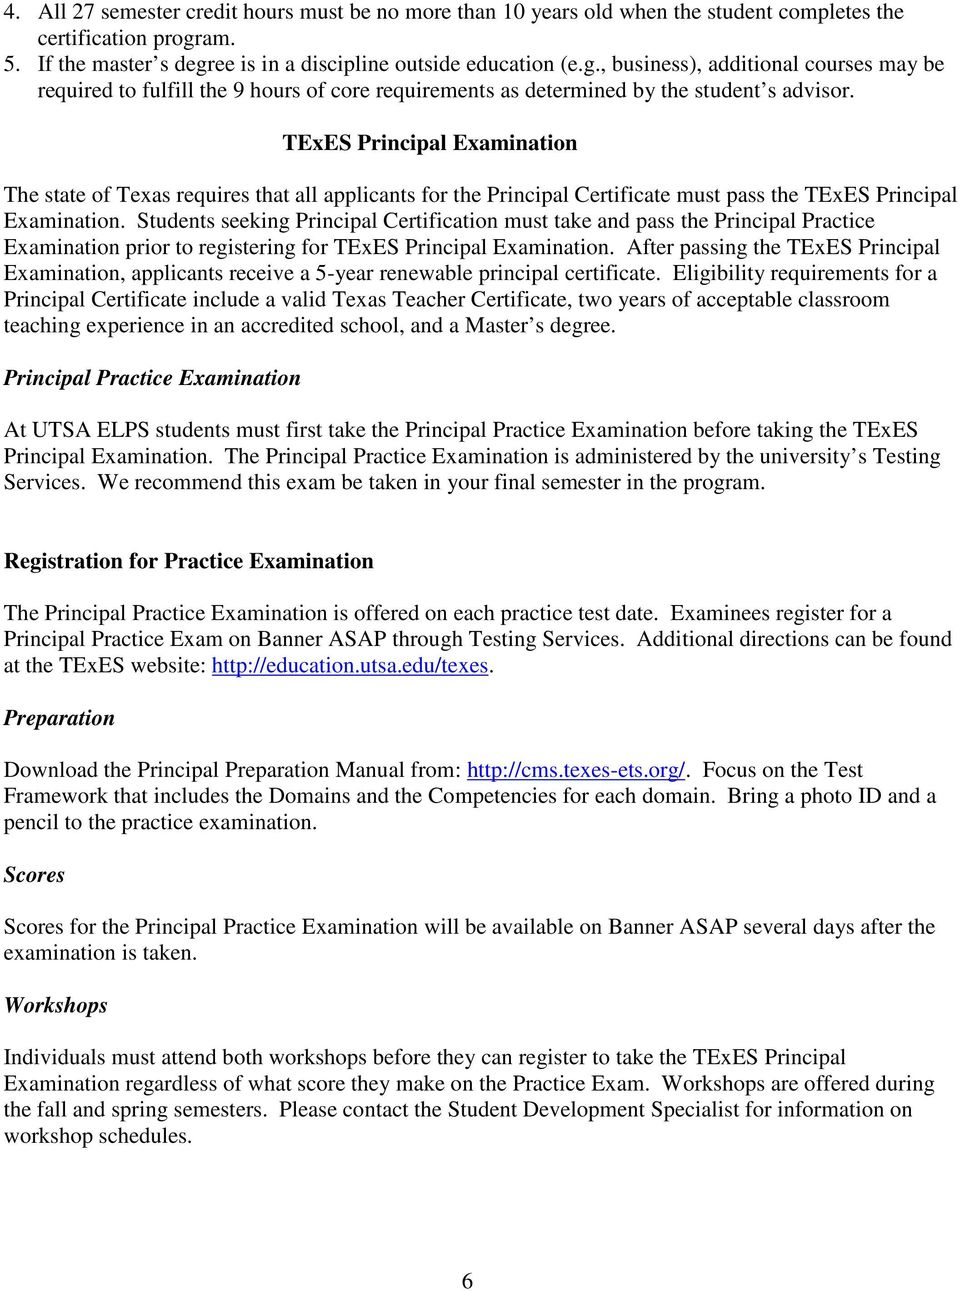 TExES Principal Examination The state of Texas requires that all applicants for the Principal Certificate must pass the TExES Principal Examination.